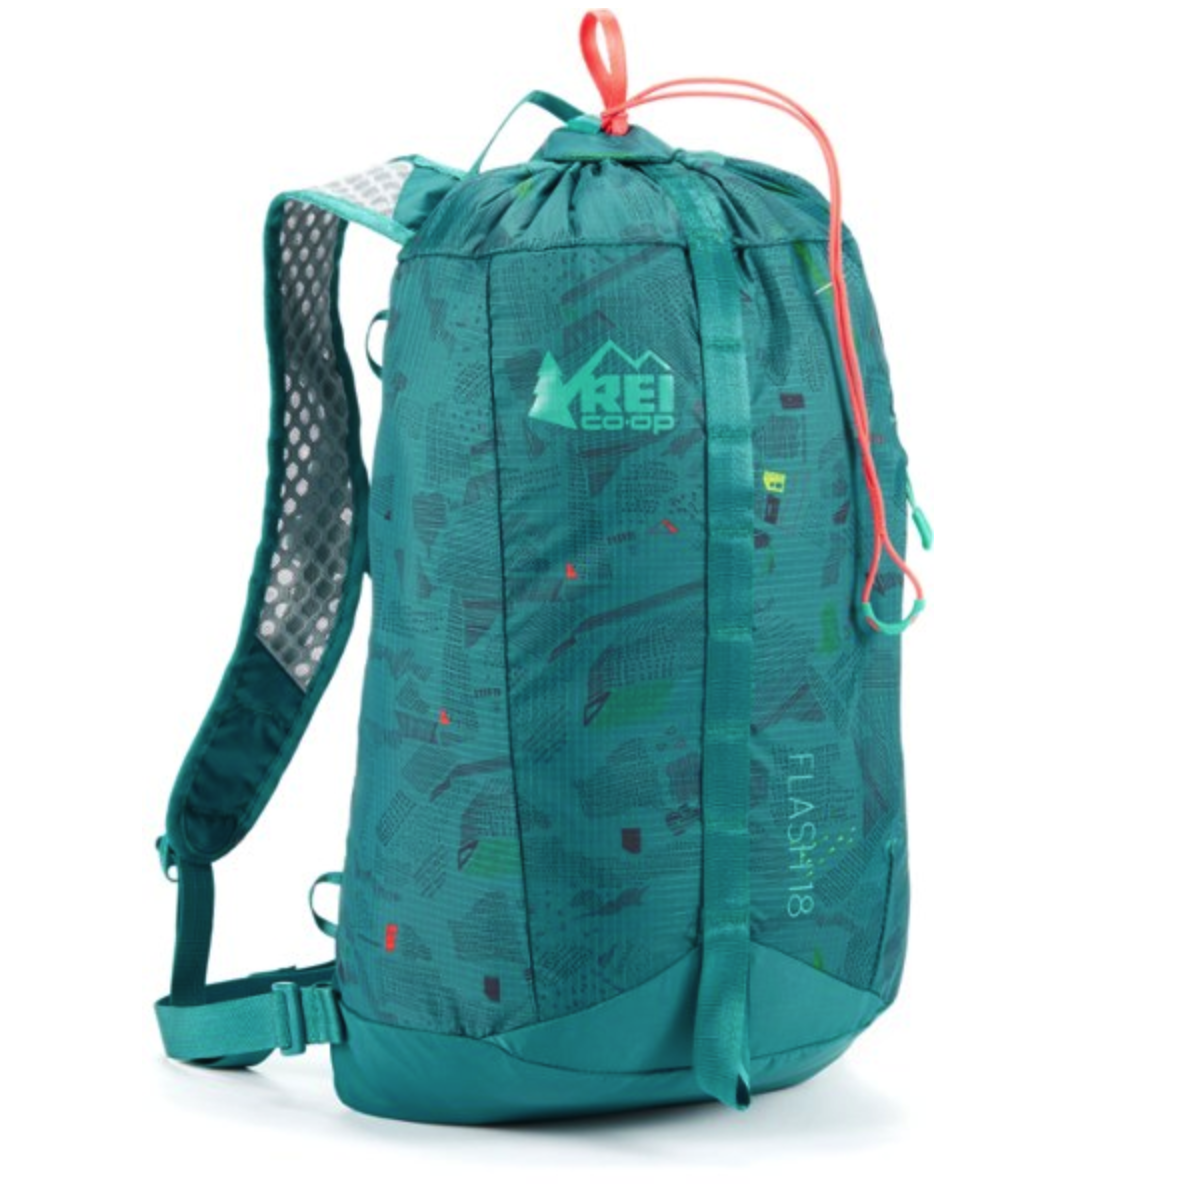 REI Co-op Special Edition Flash 18 Pack - $23.93 - 39.95